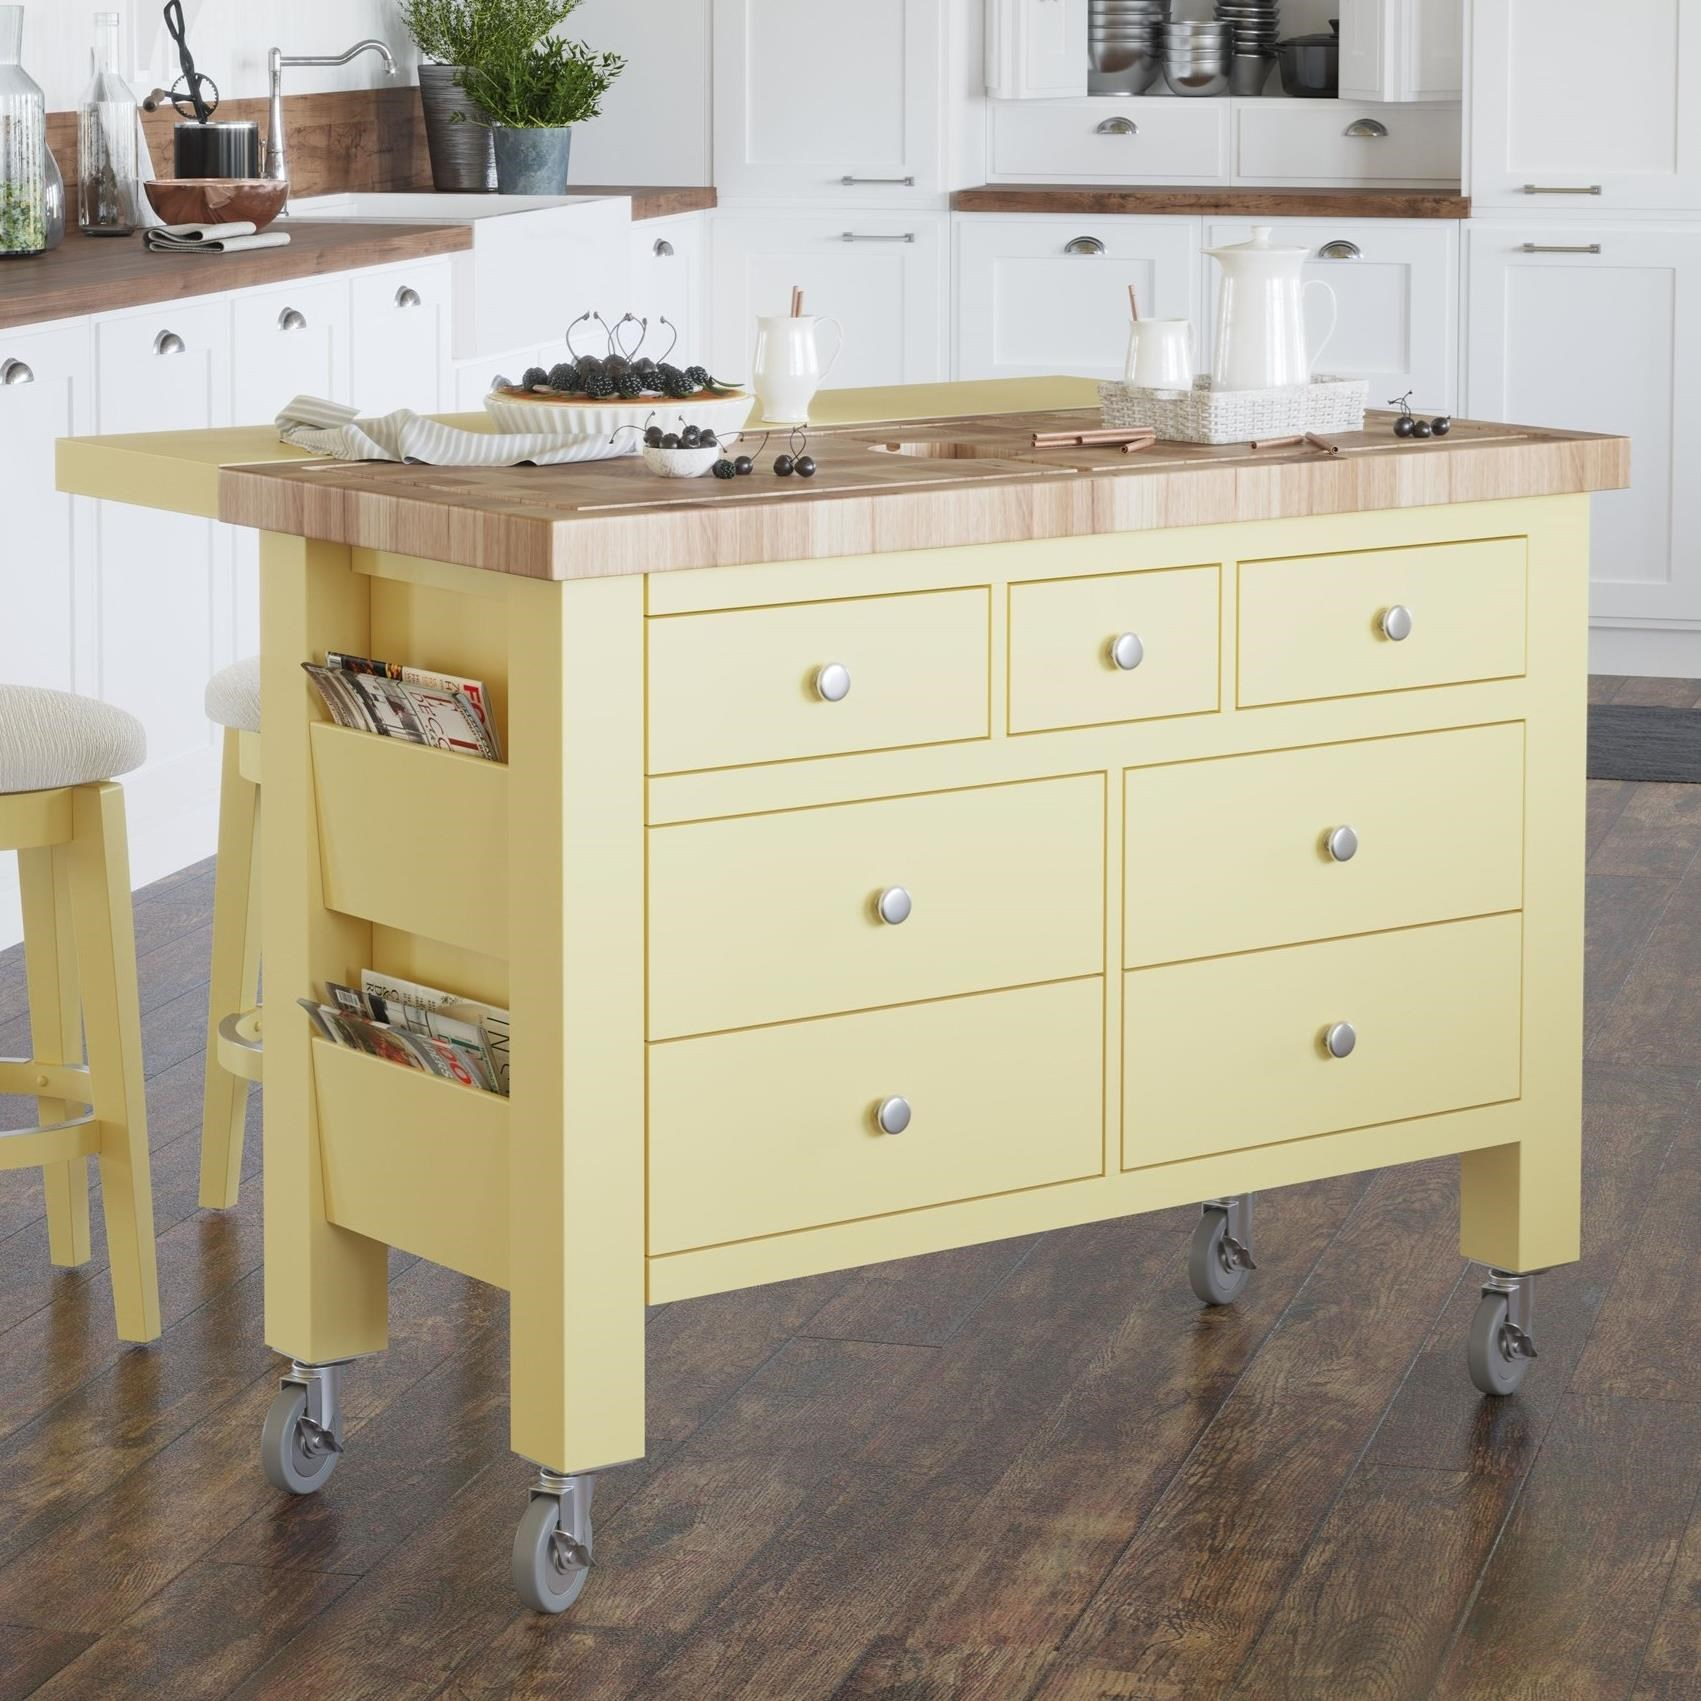 Gourmet Customizable Kitchen Island by Canadel at Dinette Depot